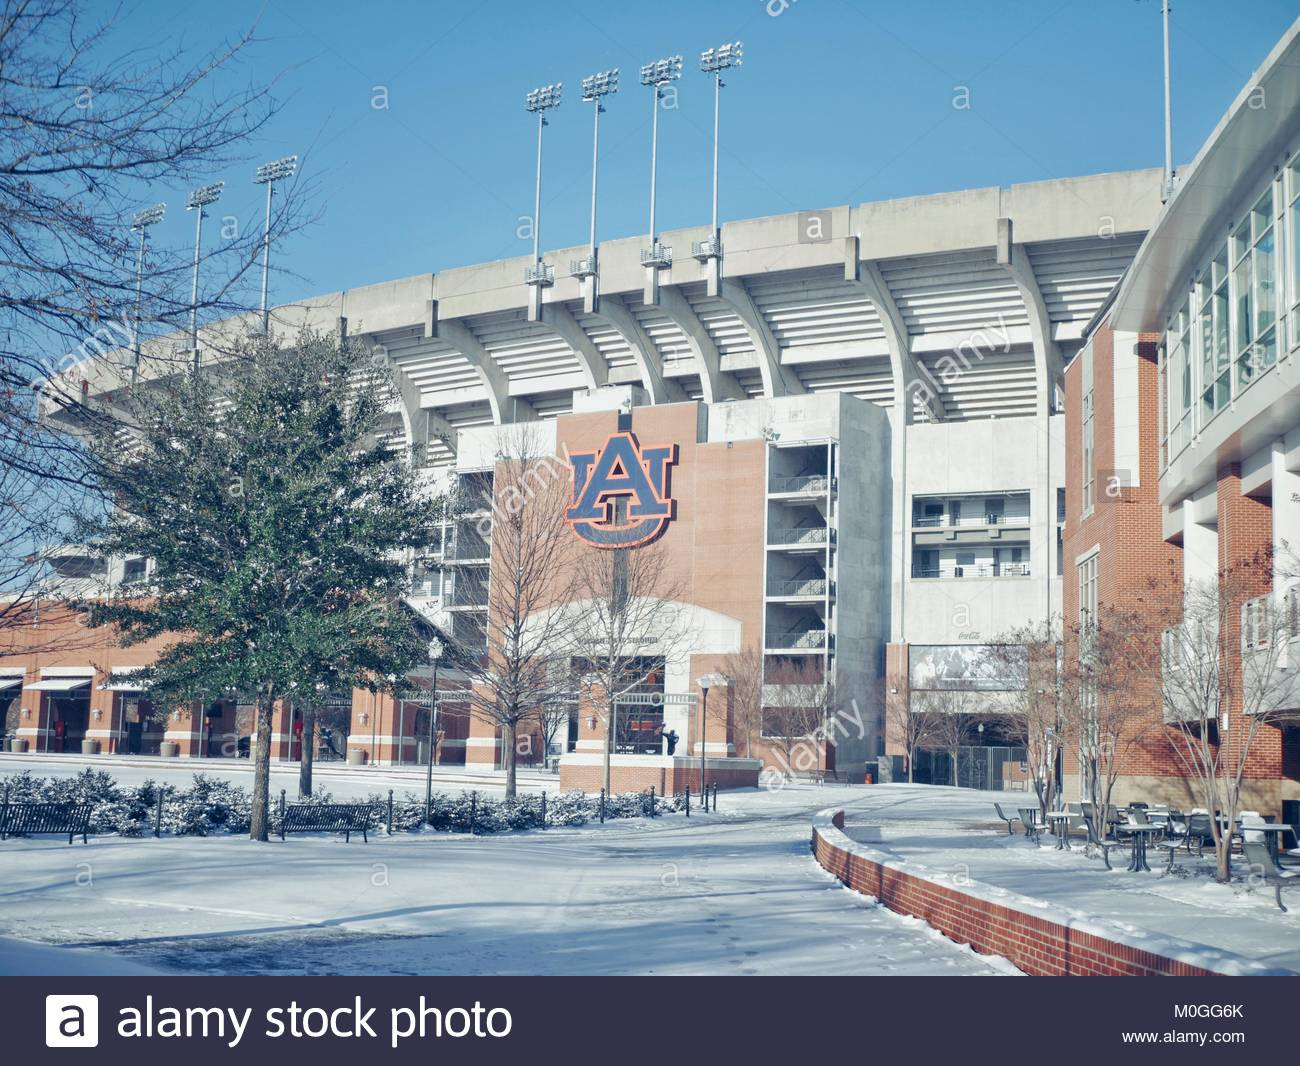 Snow day on a college campus in the southeast with a football stadium in the background. - Stock Image